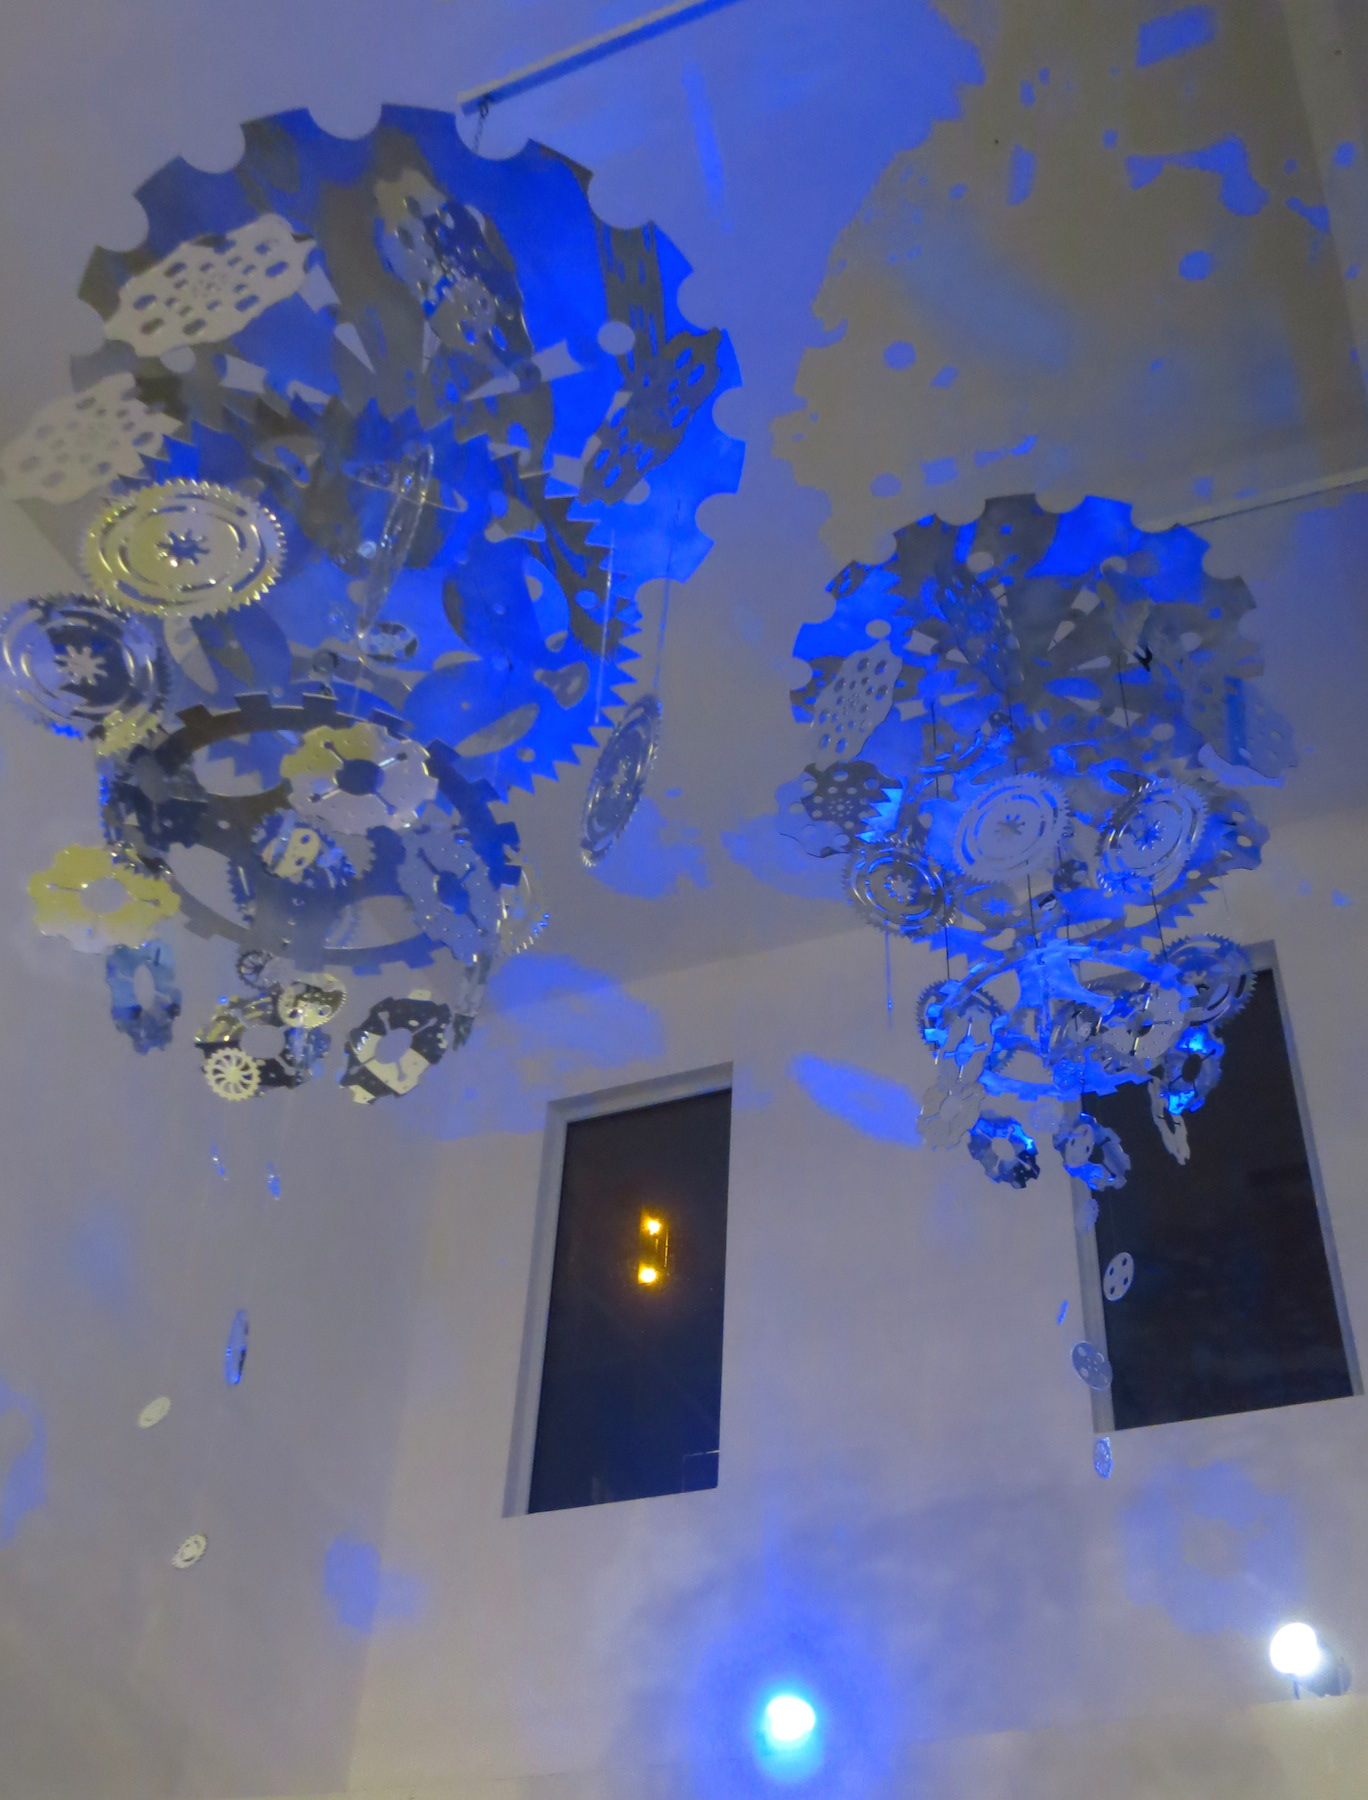 Gear Chandeliers_See Me Gallery 2015_Kate Raudenbush web.jpeg